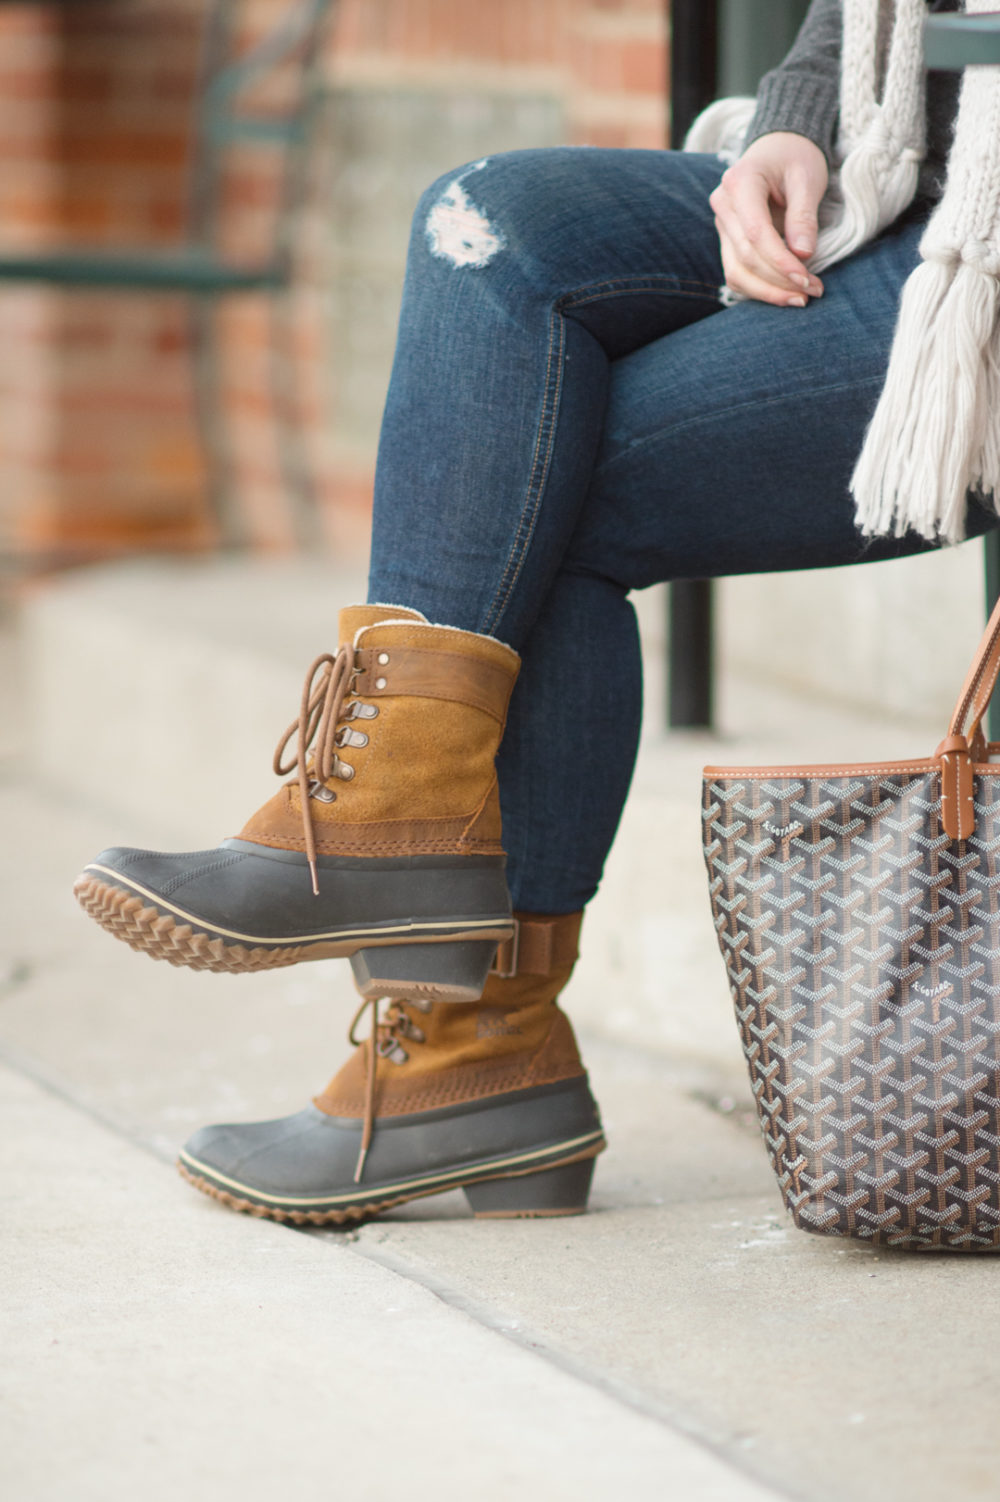 Petite Fashion and Style Blog | Fashion for Petite Women | Lark and Ro Cashmere Sweater | Sorel Winter Fancy Lace II Boot | Goyard Tote | Click to Read More...